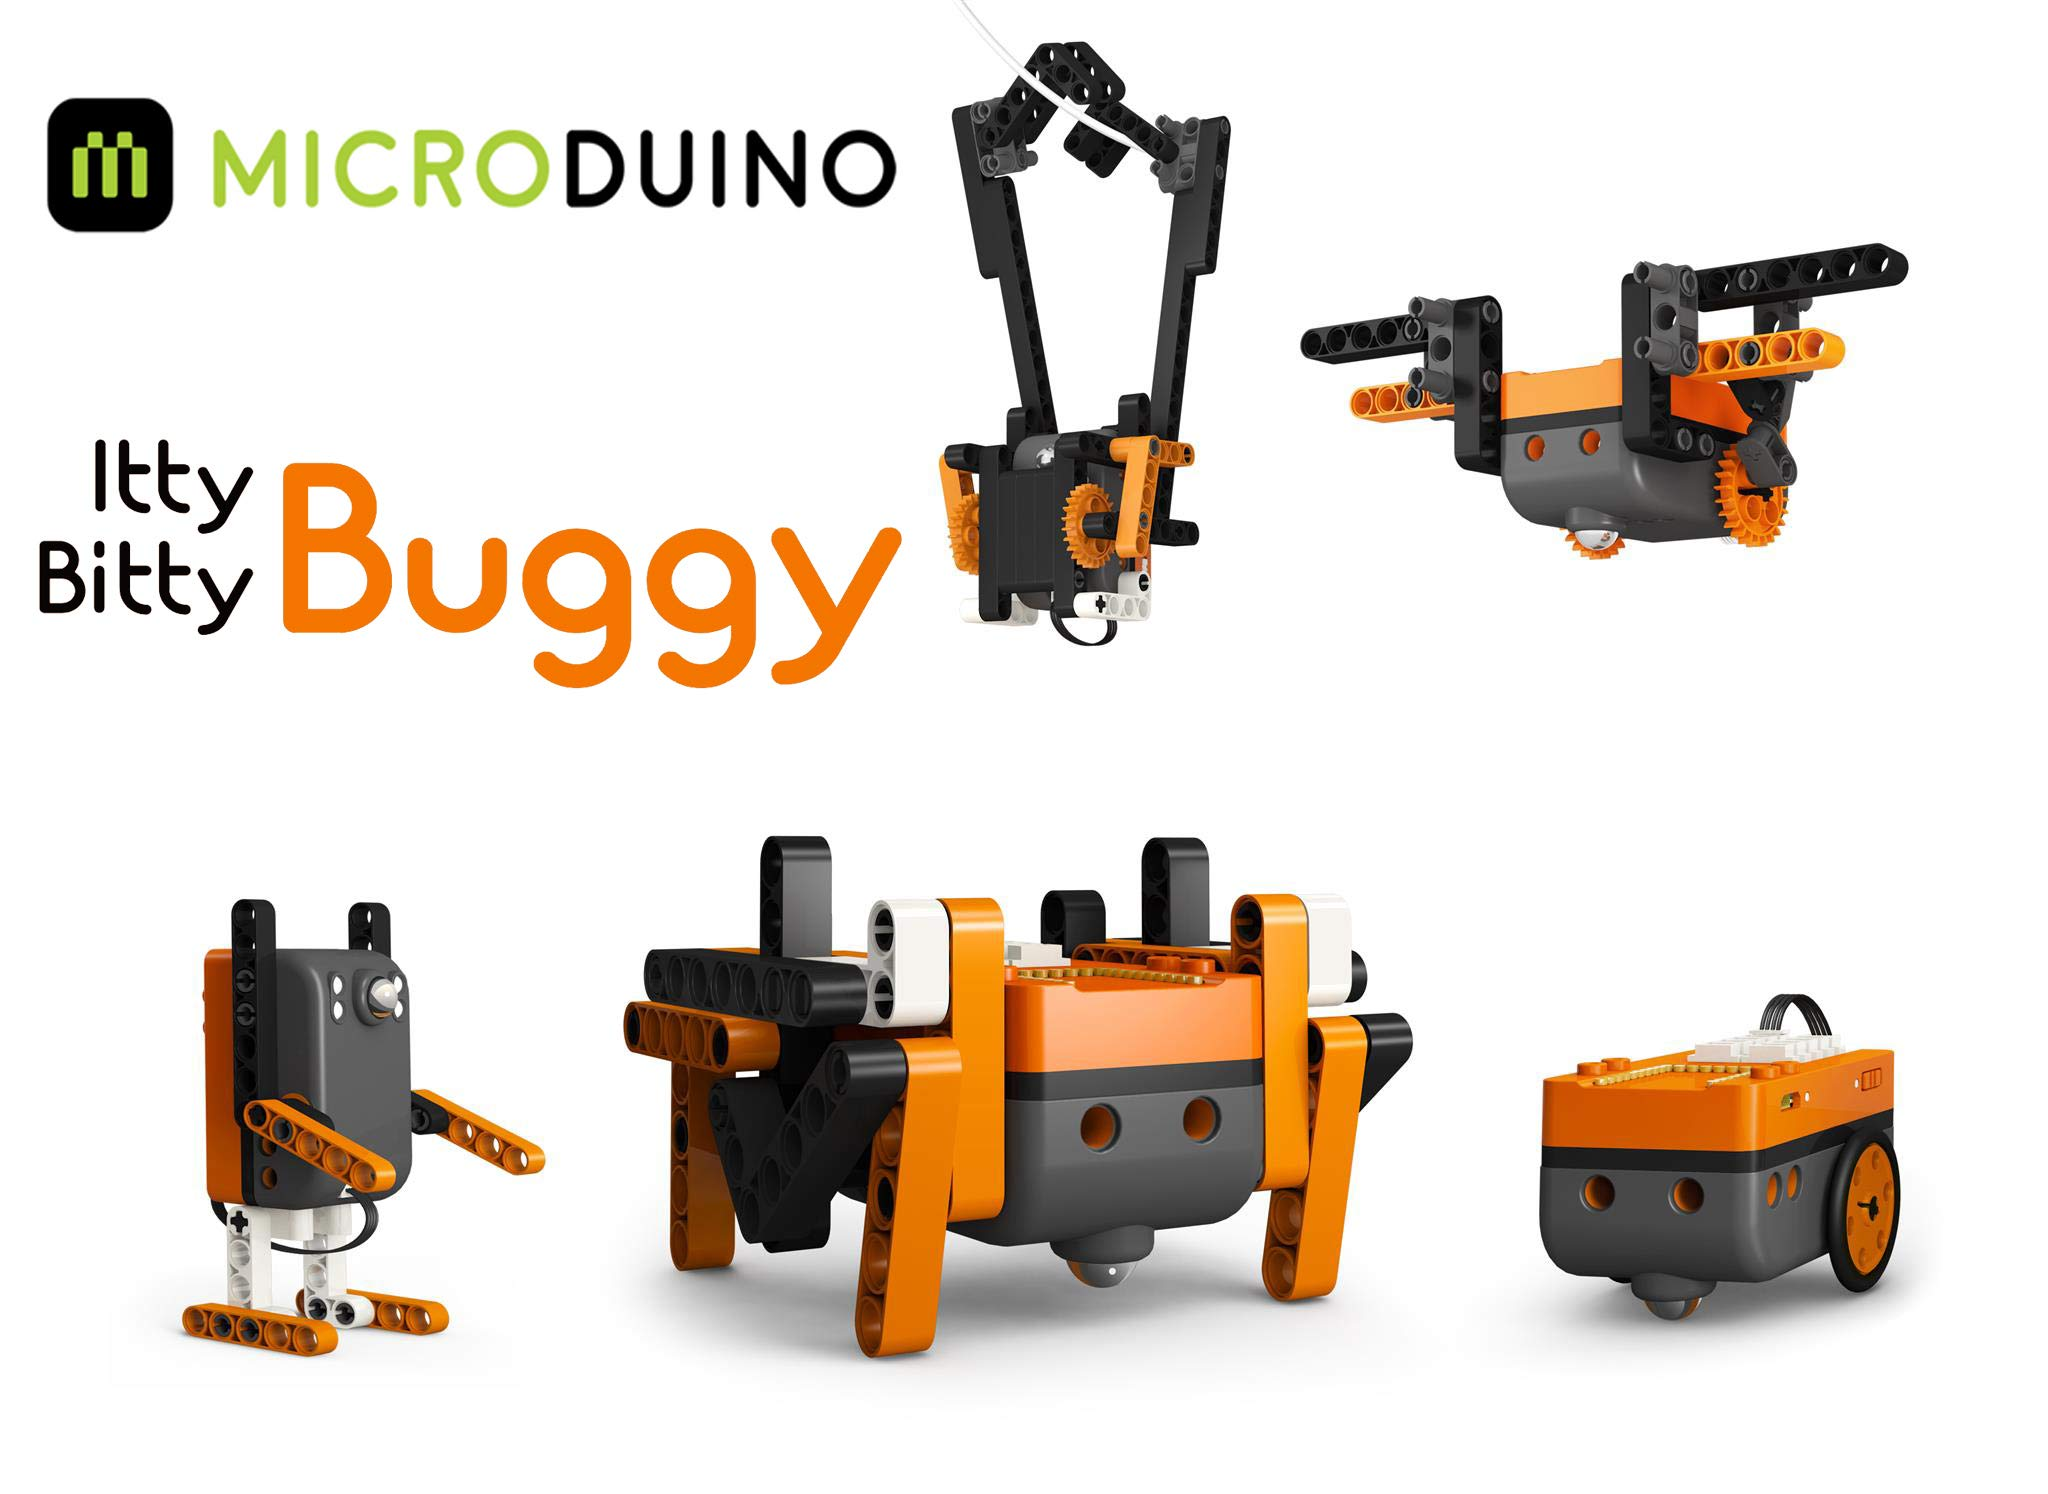 Microduino Itty Bitty Buggy DIY 5-in-1 Programmable Robot STEM Education Toy for Boys and Girls Age 8+ Learn Coding, Robotics and Electronics by Microduino (Image #3)